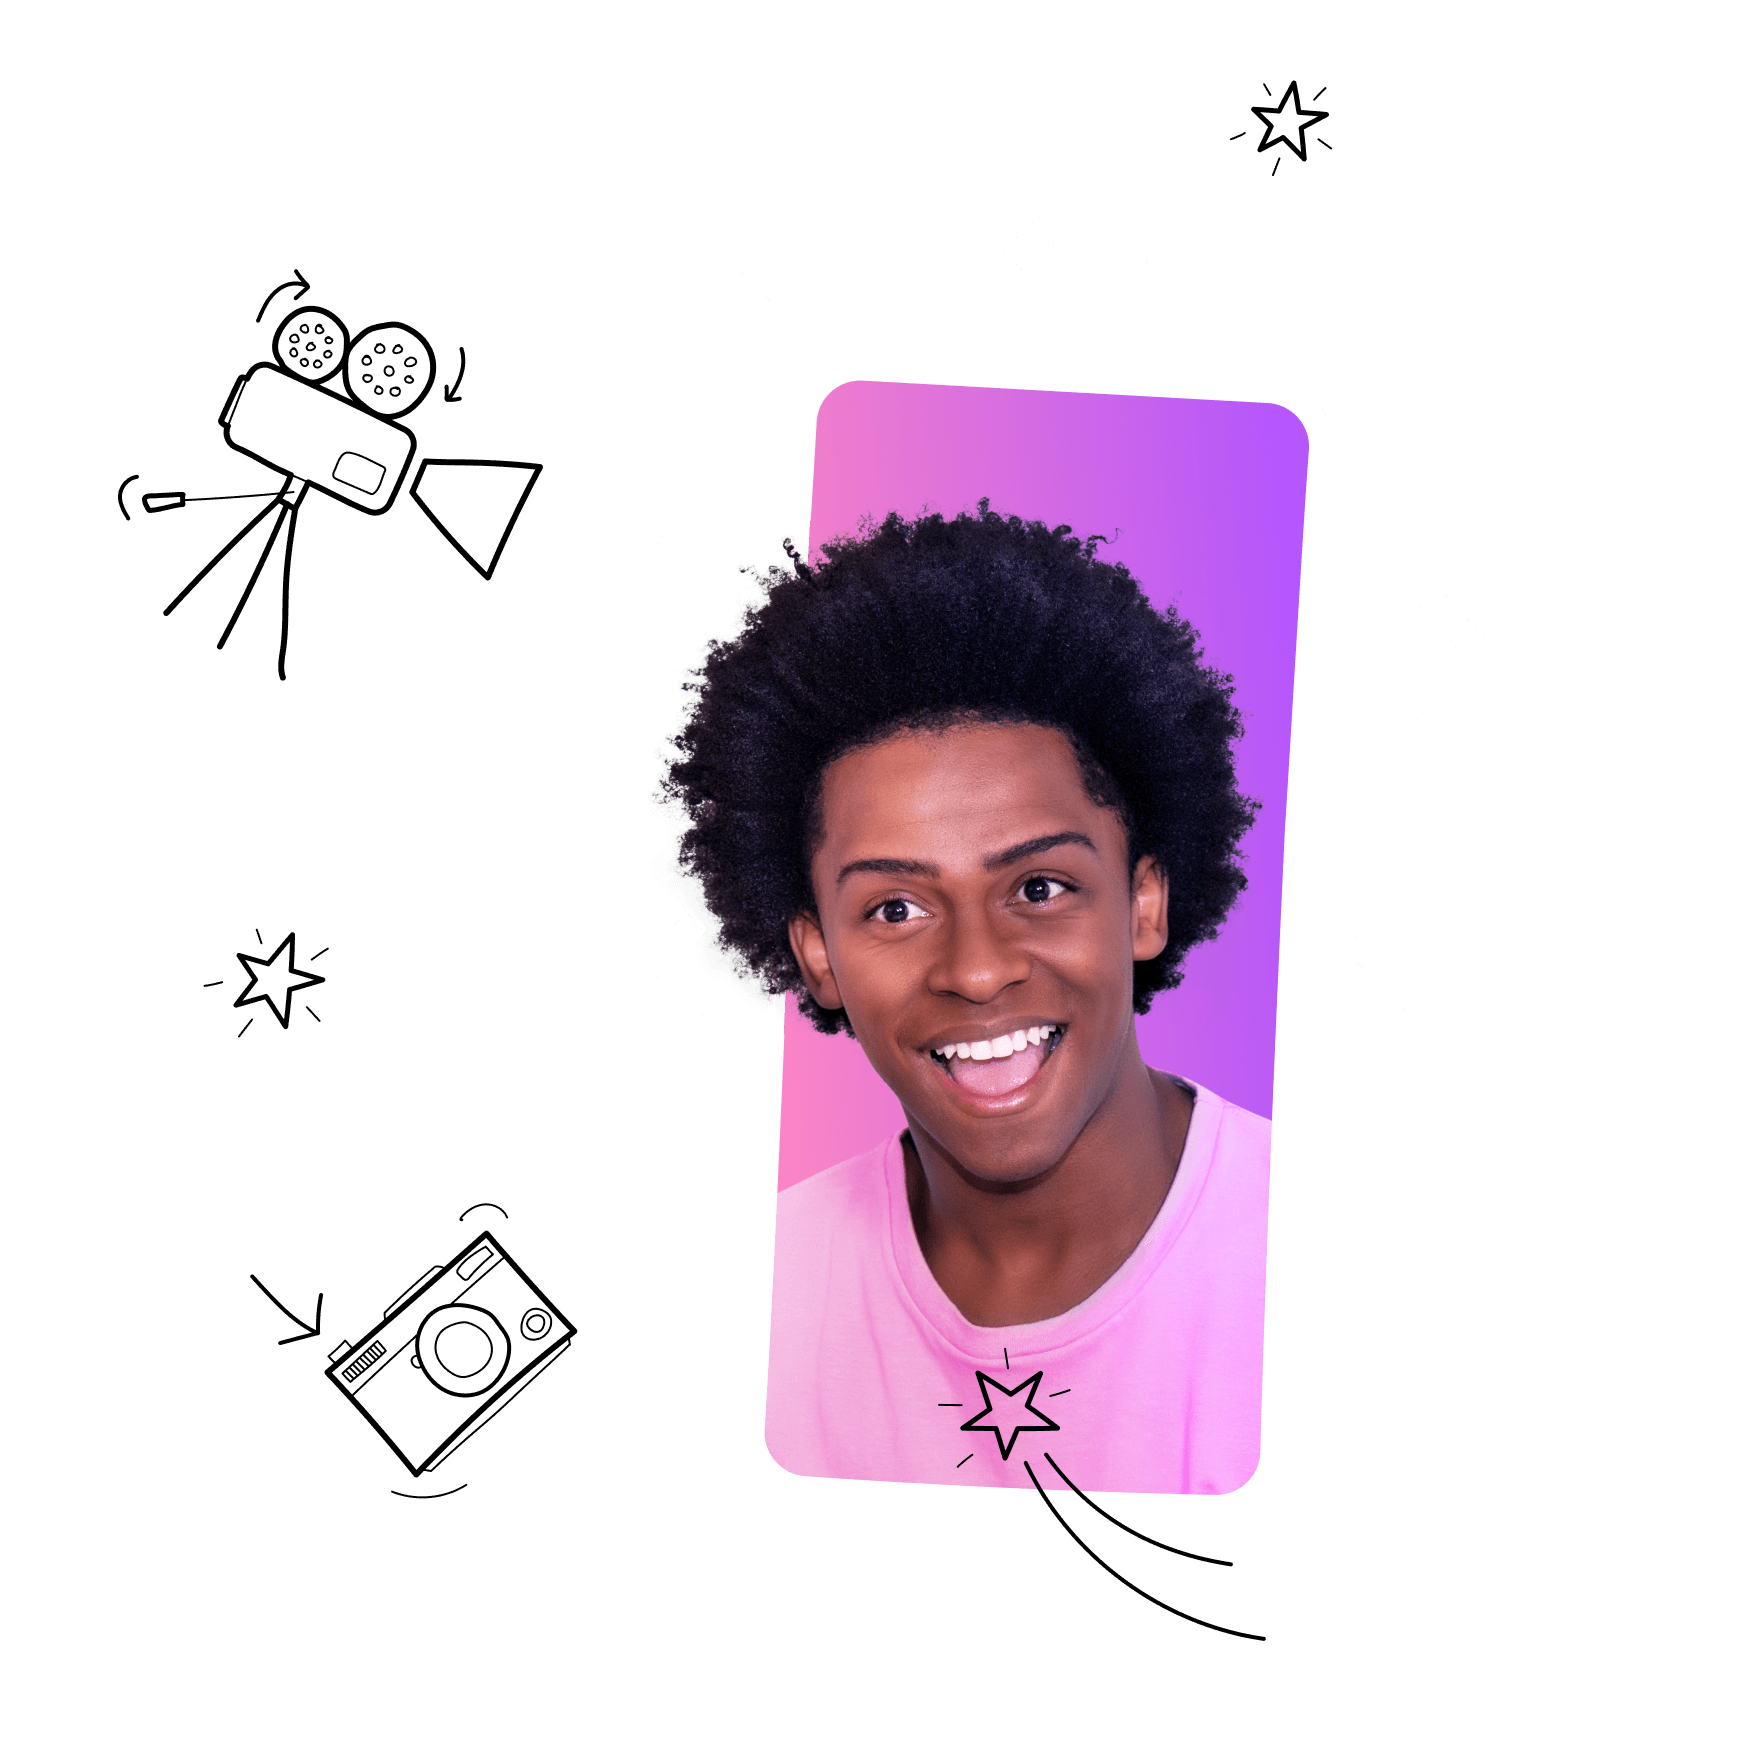 A smartphone illustration with a photo of a young man smiling.